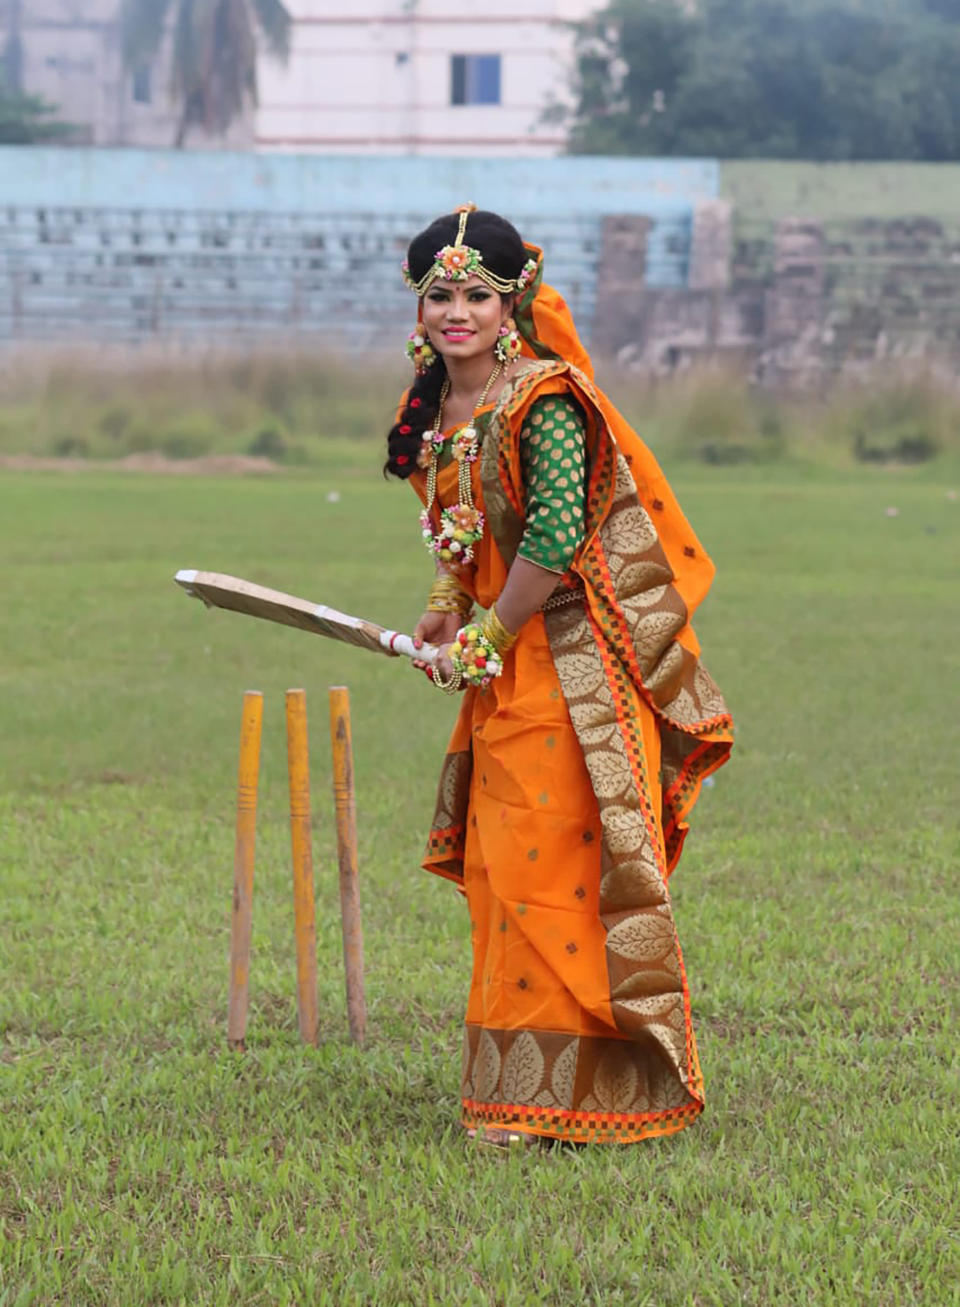 Bangladeshi cricketer Sanjida Islam poses as a bride with a cricket bat, a day before her wedding day in Rangpur, Bangladesh, Friday, Oct. 16. (Sobhana Mostary via AP)